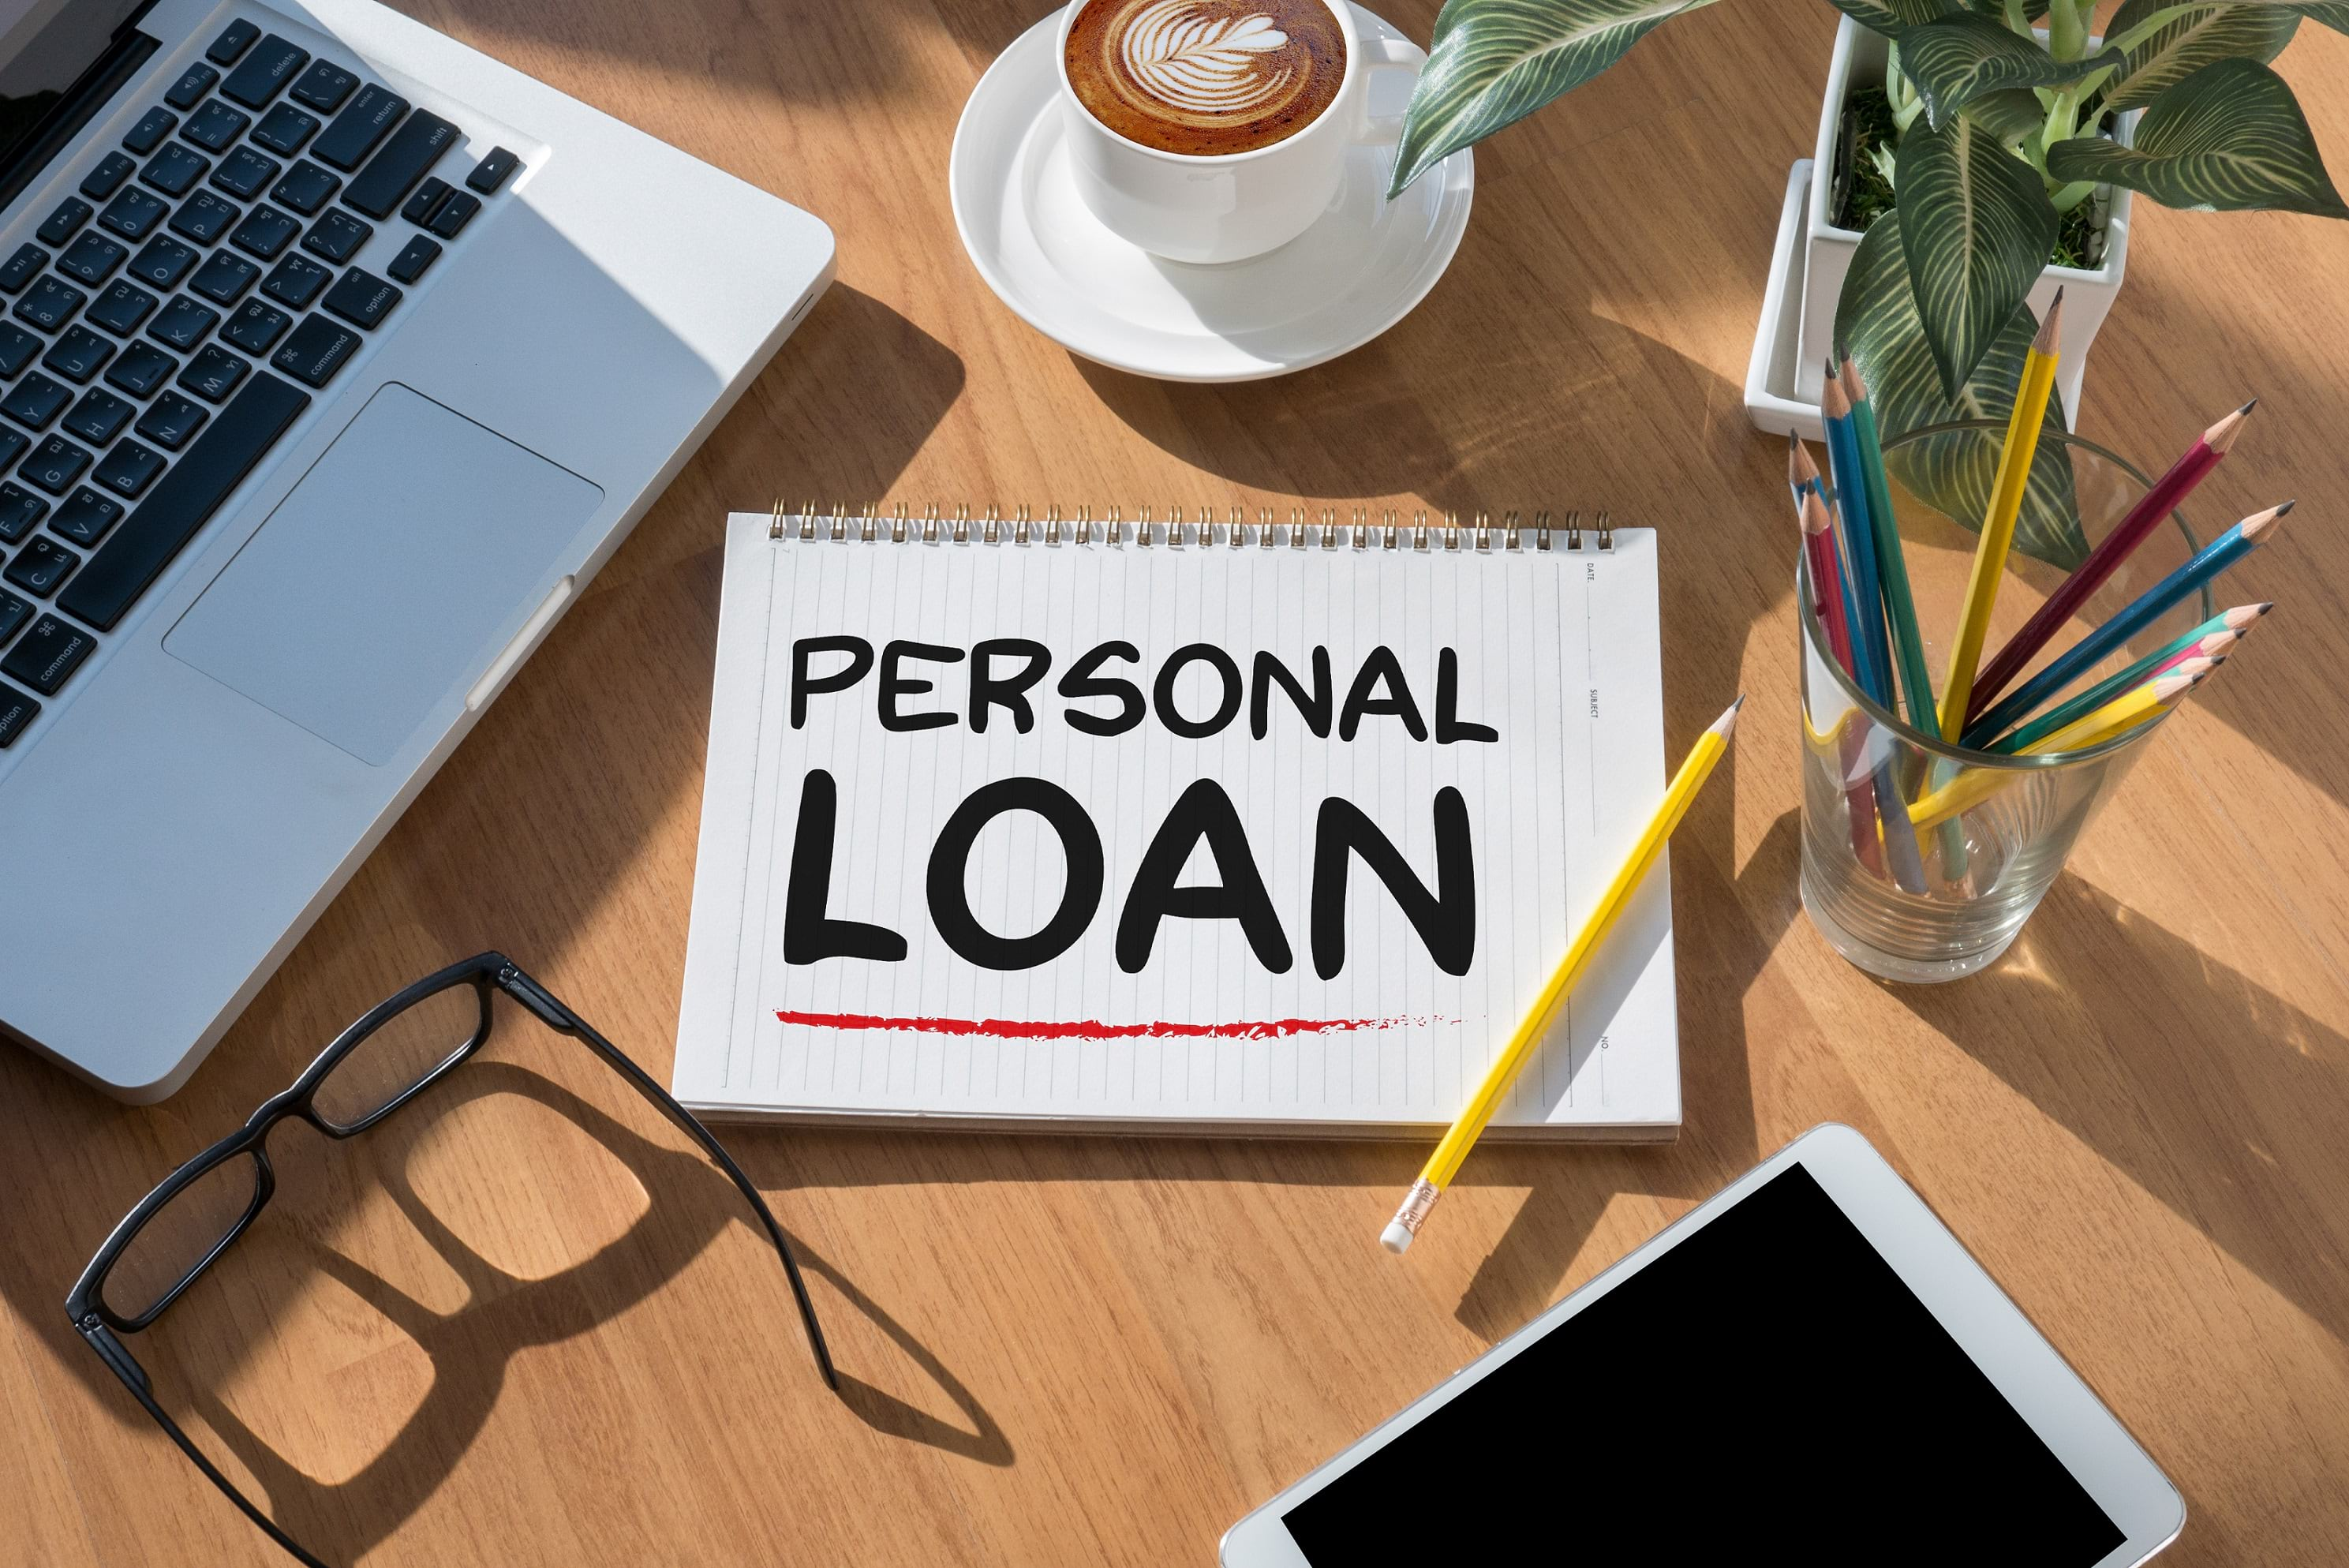 What Is a Personal Loan? Definition, Types and More